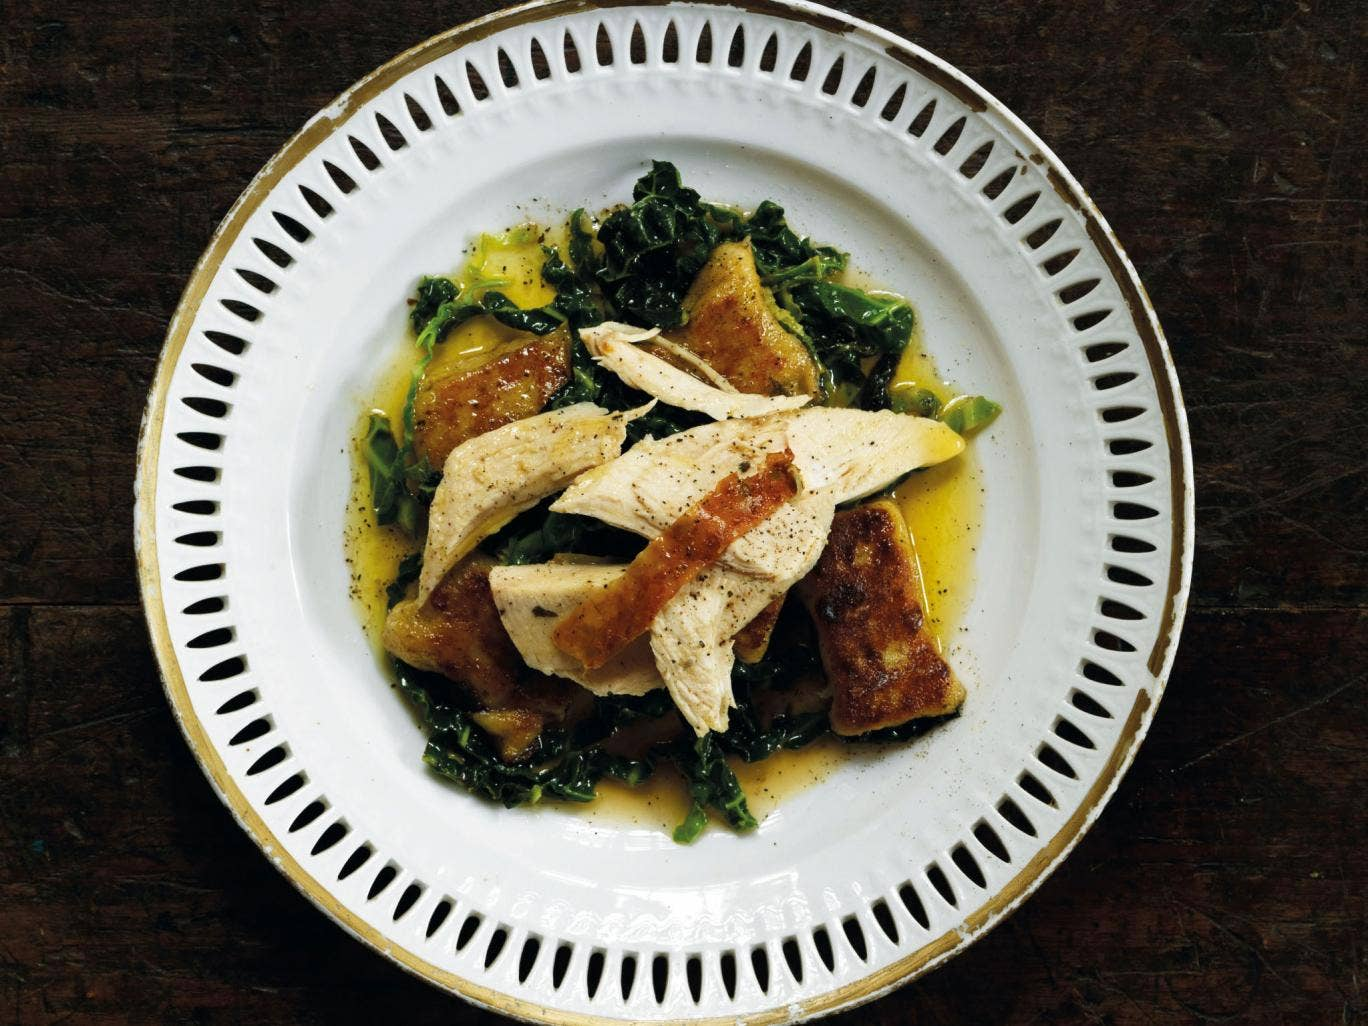 Roast chicken with truffled gnocchi and sage butter by Gizzi Erskine